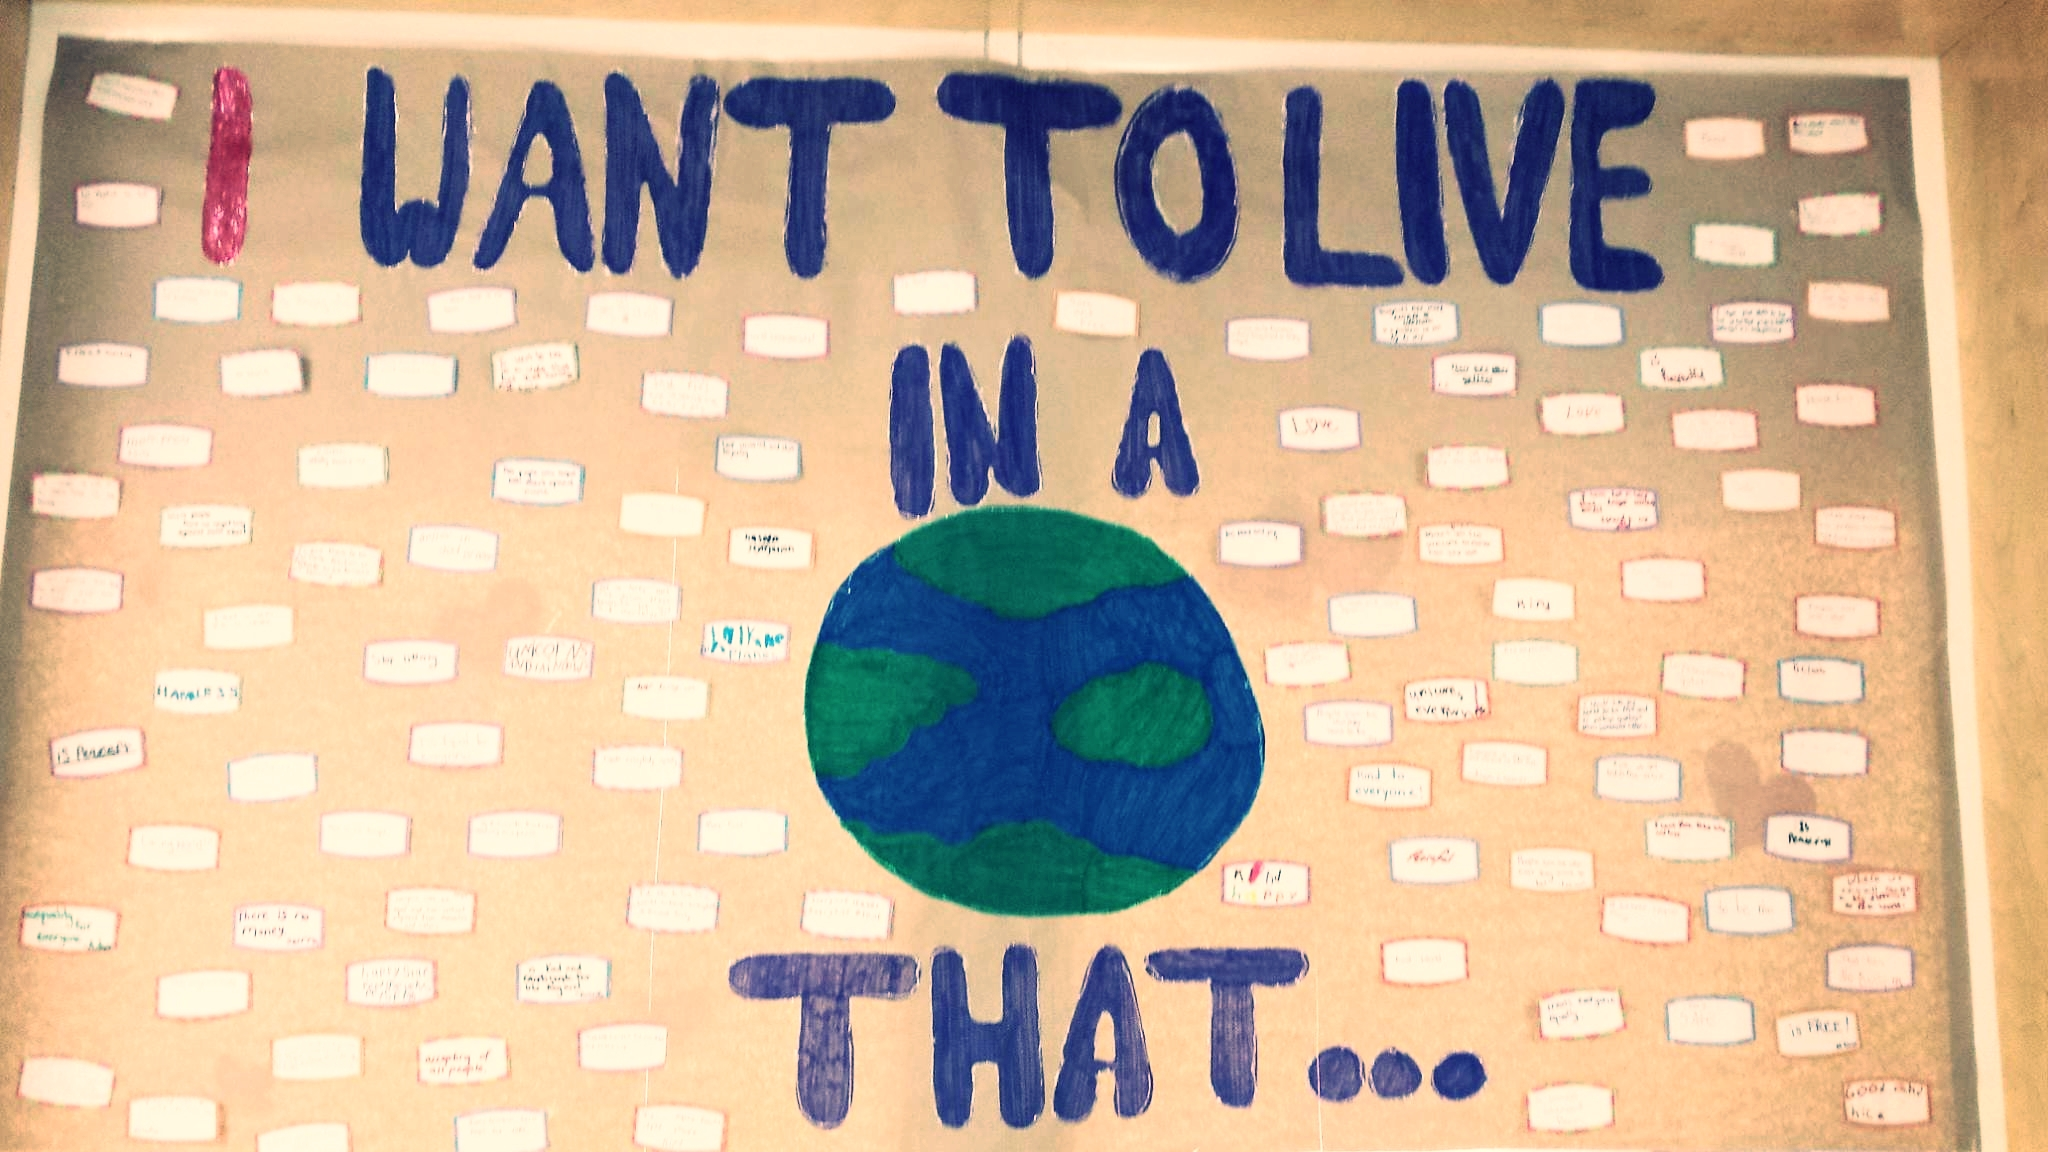 """The grade 6/7 class are making a conscious effort sharing their thoughts of what kind of world they'd like to live in, bringing awareness and sparking conversation. An interactive display board was created and the school community invited to share their thoughts by finishing the statement """"I want to live in a world that . . ."""" The focus being, what """"WE"""" can do to make this a reality.  The statement was also posted on Facebook inviting the community into the discussion.  Challenging people to think and share how they can make a positive difference in the world! Developing an understanding that dialogue is the first step to change and everyone's voice is important."""